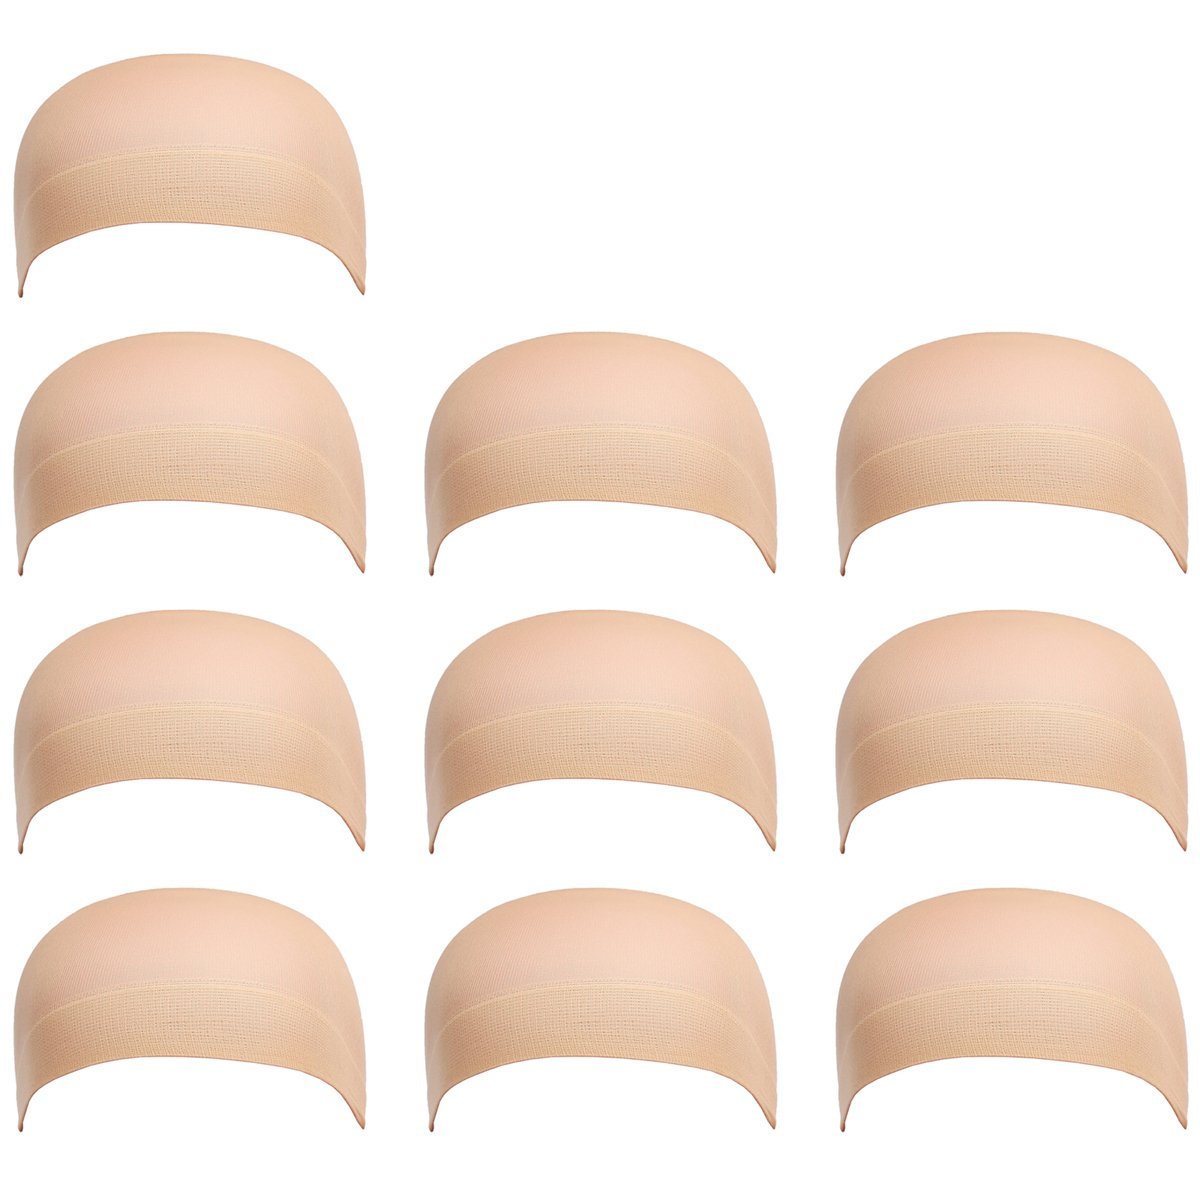 10 Pack Dreamlover Nylon Wig Caps, Skin Color Stretchy Close End Stocking Wig Caps, Each Paper Board Contains 2 Wig Caps (Natural Nude Beige)